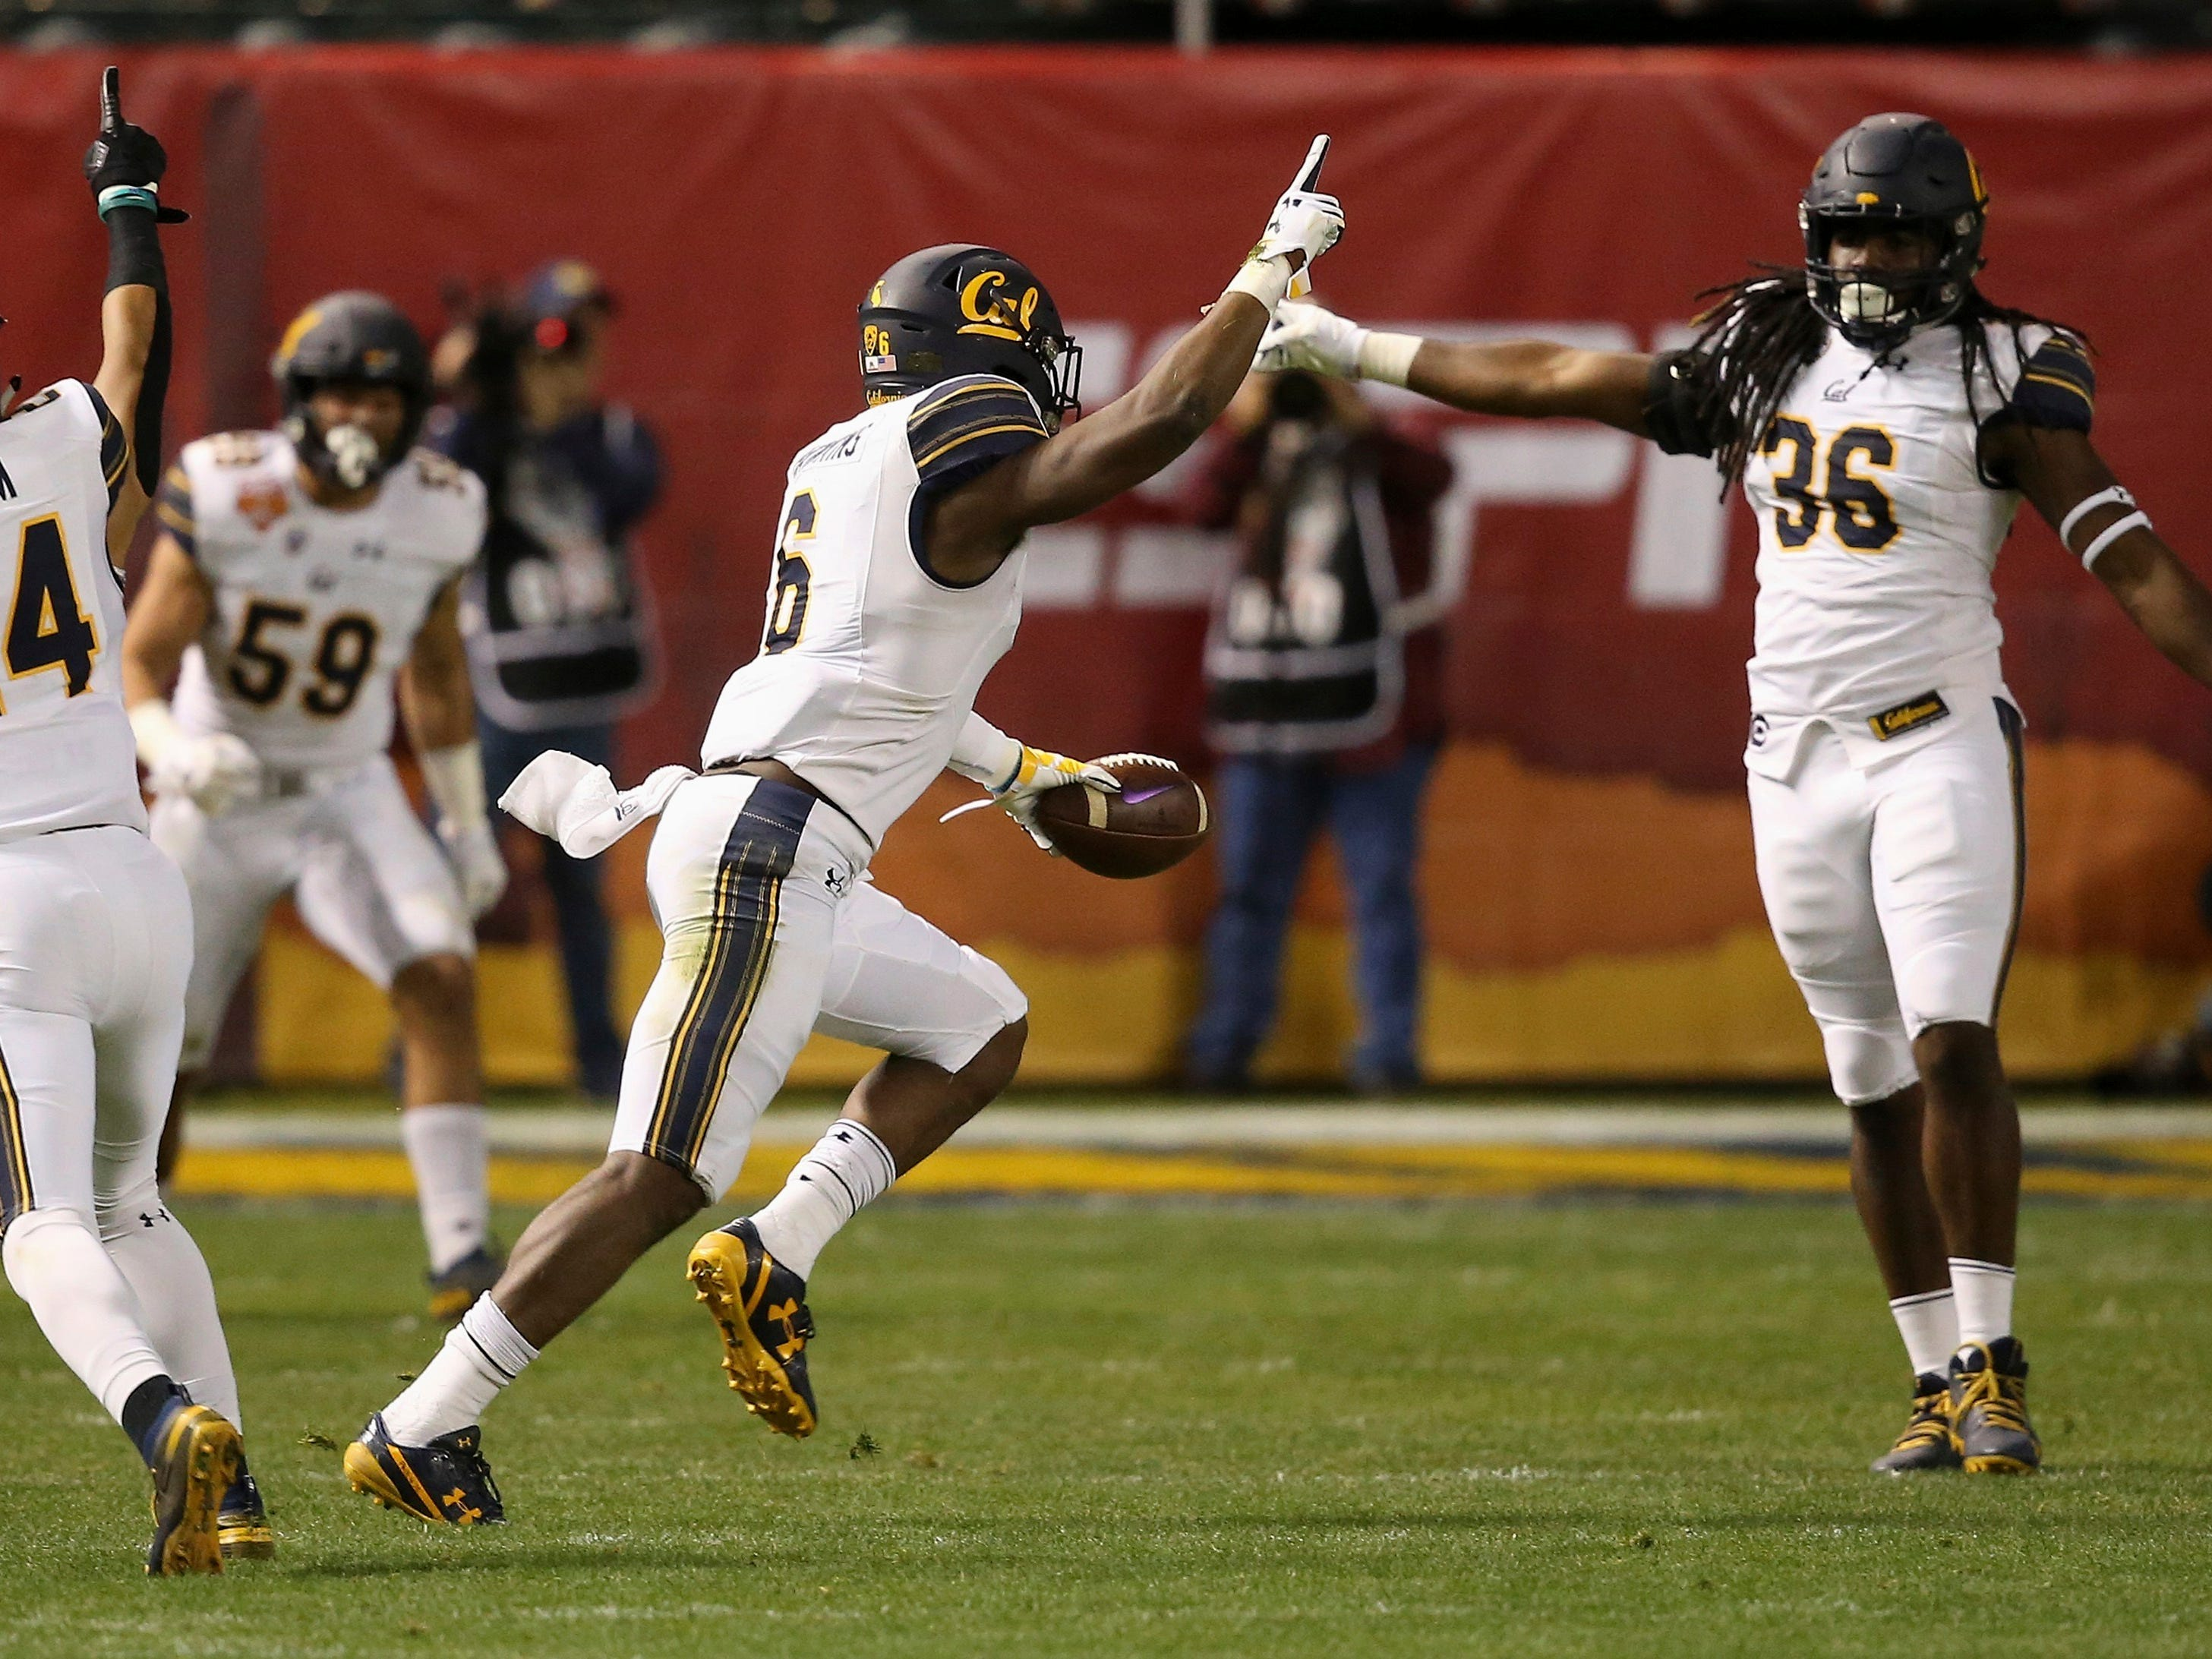 California safety Jaylinn Hawkins (6) celebrates his interception against TCU with linebacker Alex Funches (36) and cornerback Camryn Bynum (24) as linebacker Jordan Kunaszyk (59) watches during the first half of the Cheez-It Bowl NCAA college football game Wednesday, Dec. 26, 2018, in Phoenix.